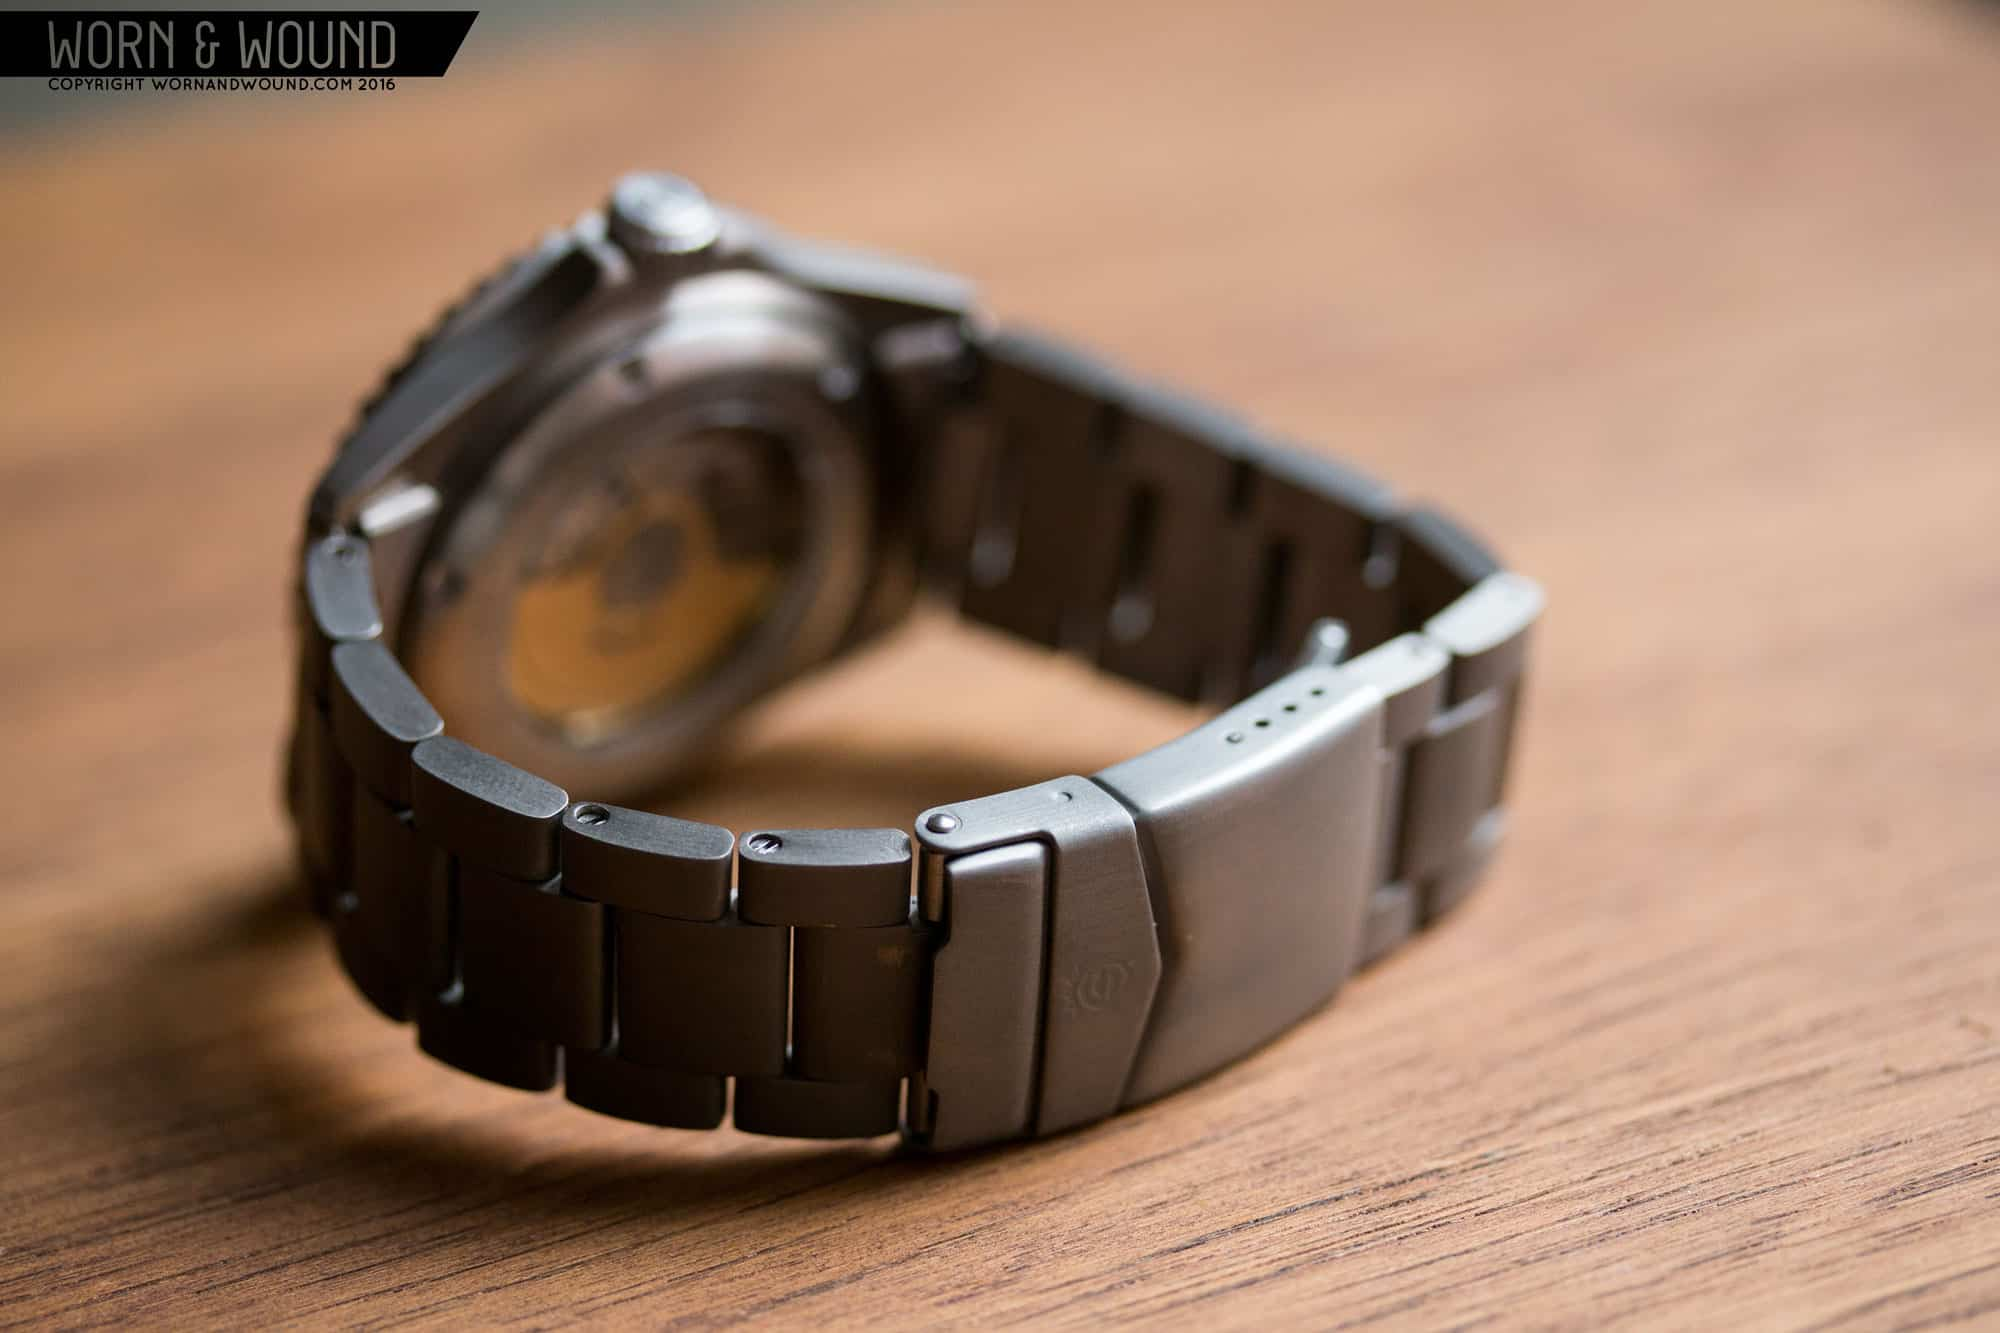 Steinhart Ocean One Titanium Premium 500 Review Worn Wound